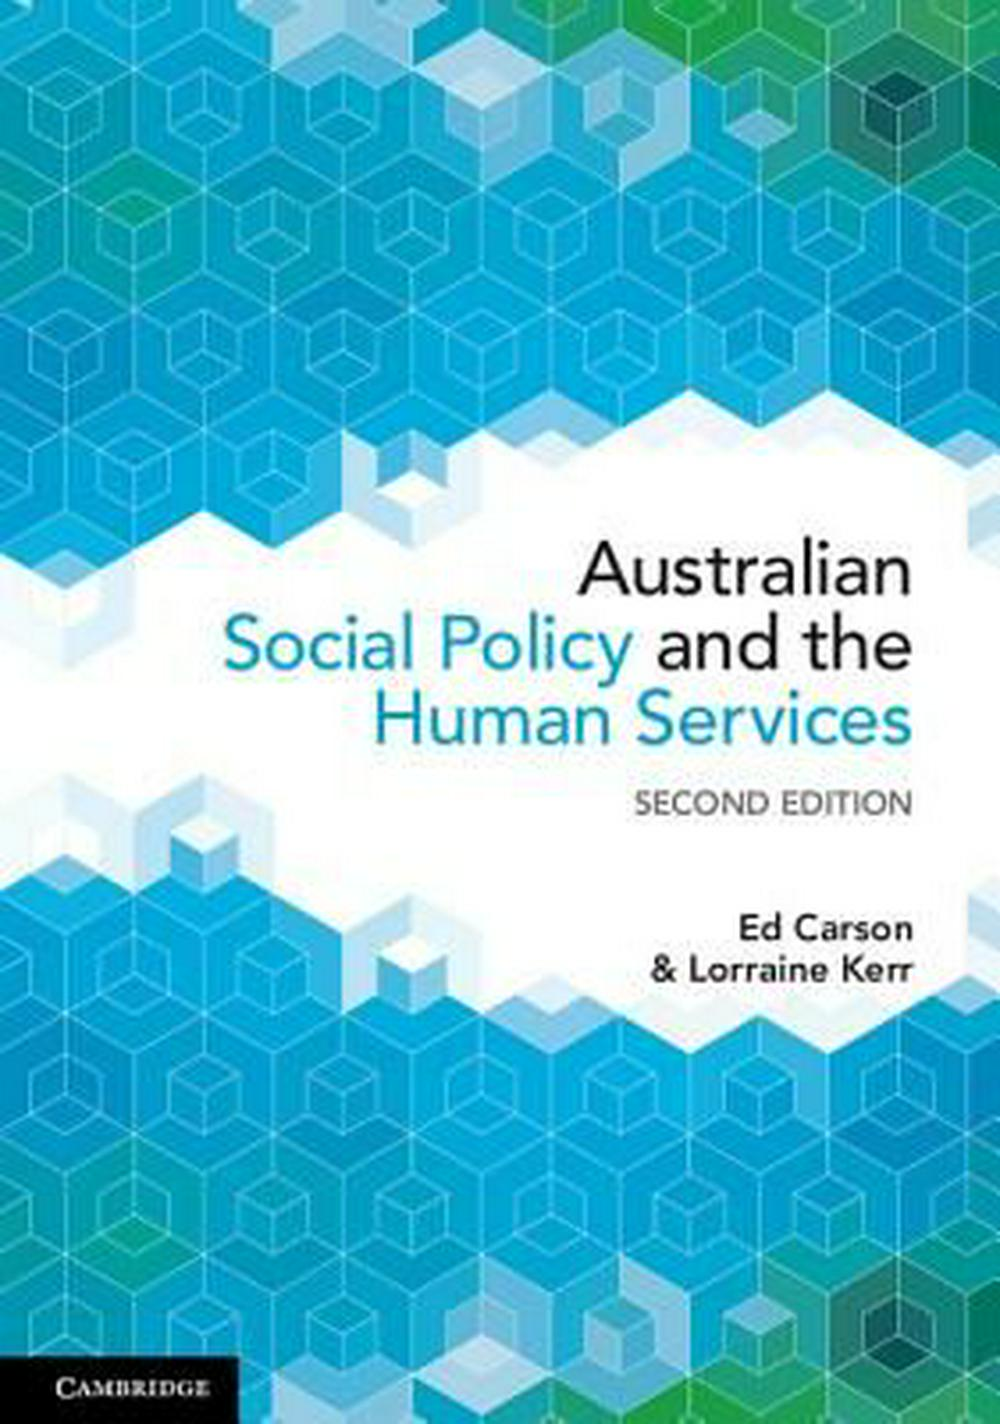 Australian Social Policy and the Human Services by Carson  Edgar, ISBN: 9781316621035